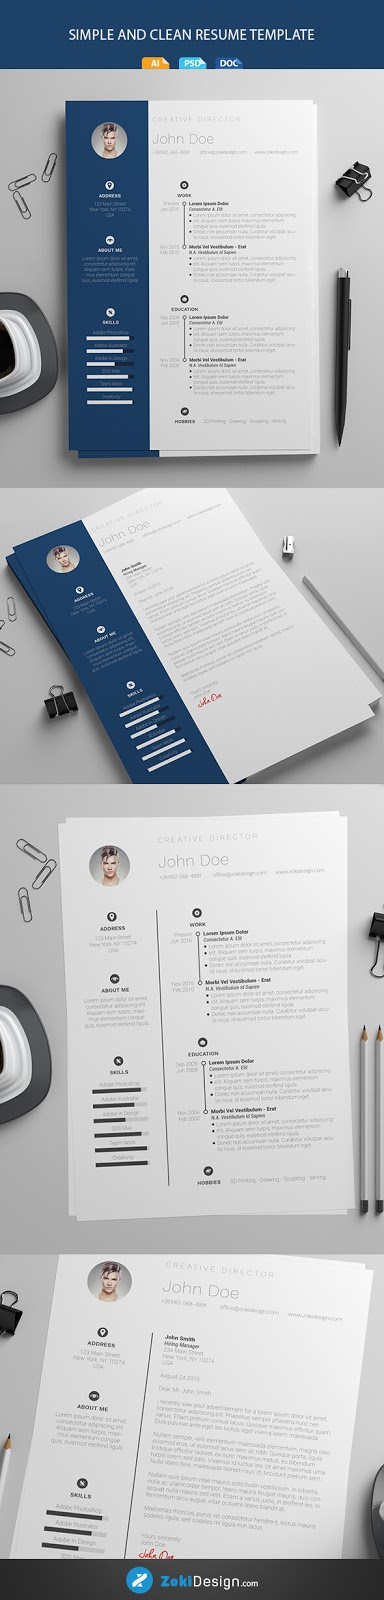 Download Template CV Word 100% Gratis - Free Simple and Clean Microsoft Word Resume Template